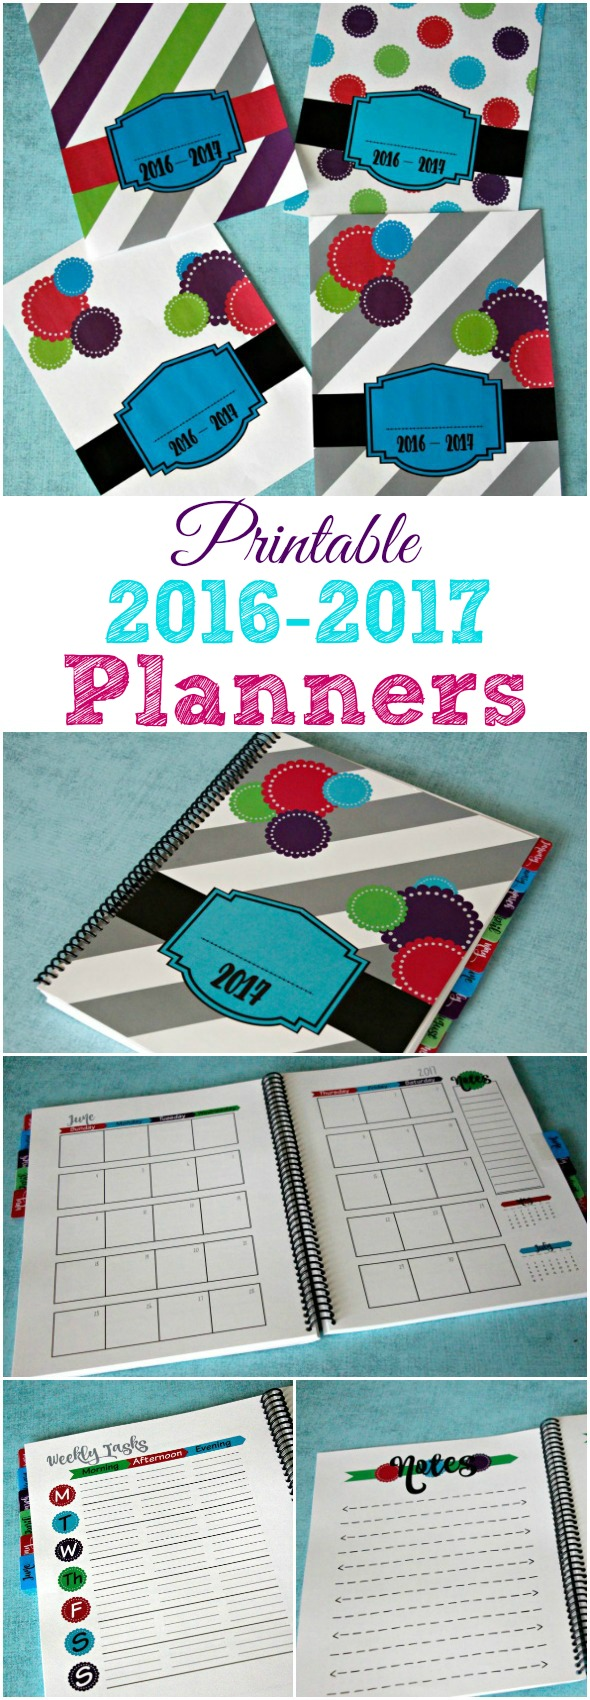 2016-2017 Planners / 2017 Planners / Printable Download or Printed & Spiral Bound / Home Management and Life Planner #ad